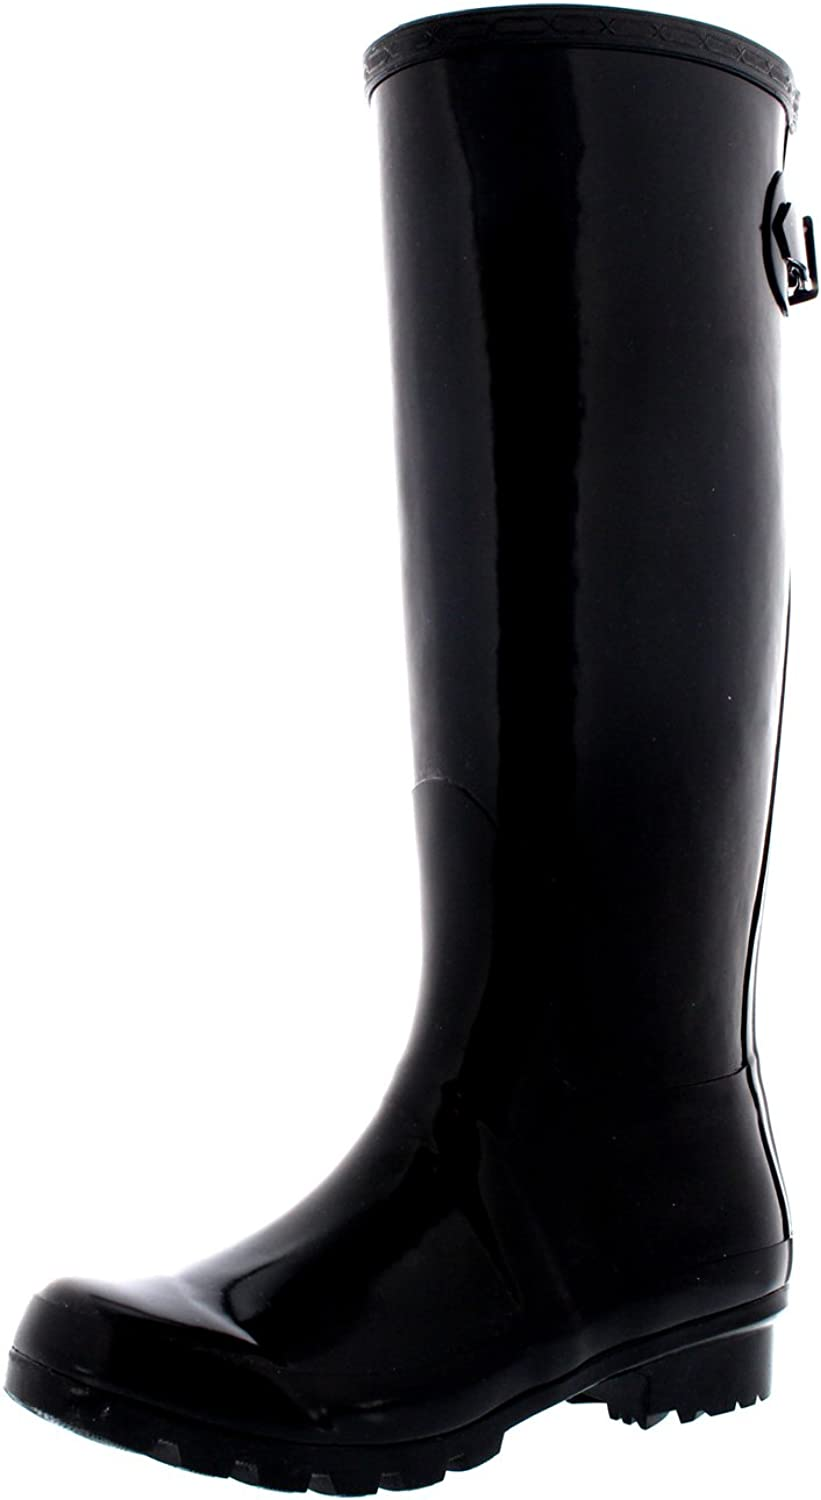 Polar Womens Adjustable Back Tall Gloss Wellington Winter Wellies Snow Rain Boots - Black - 6-37 - CD0019